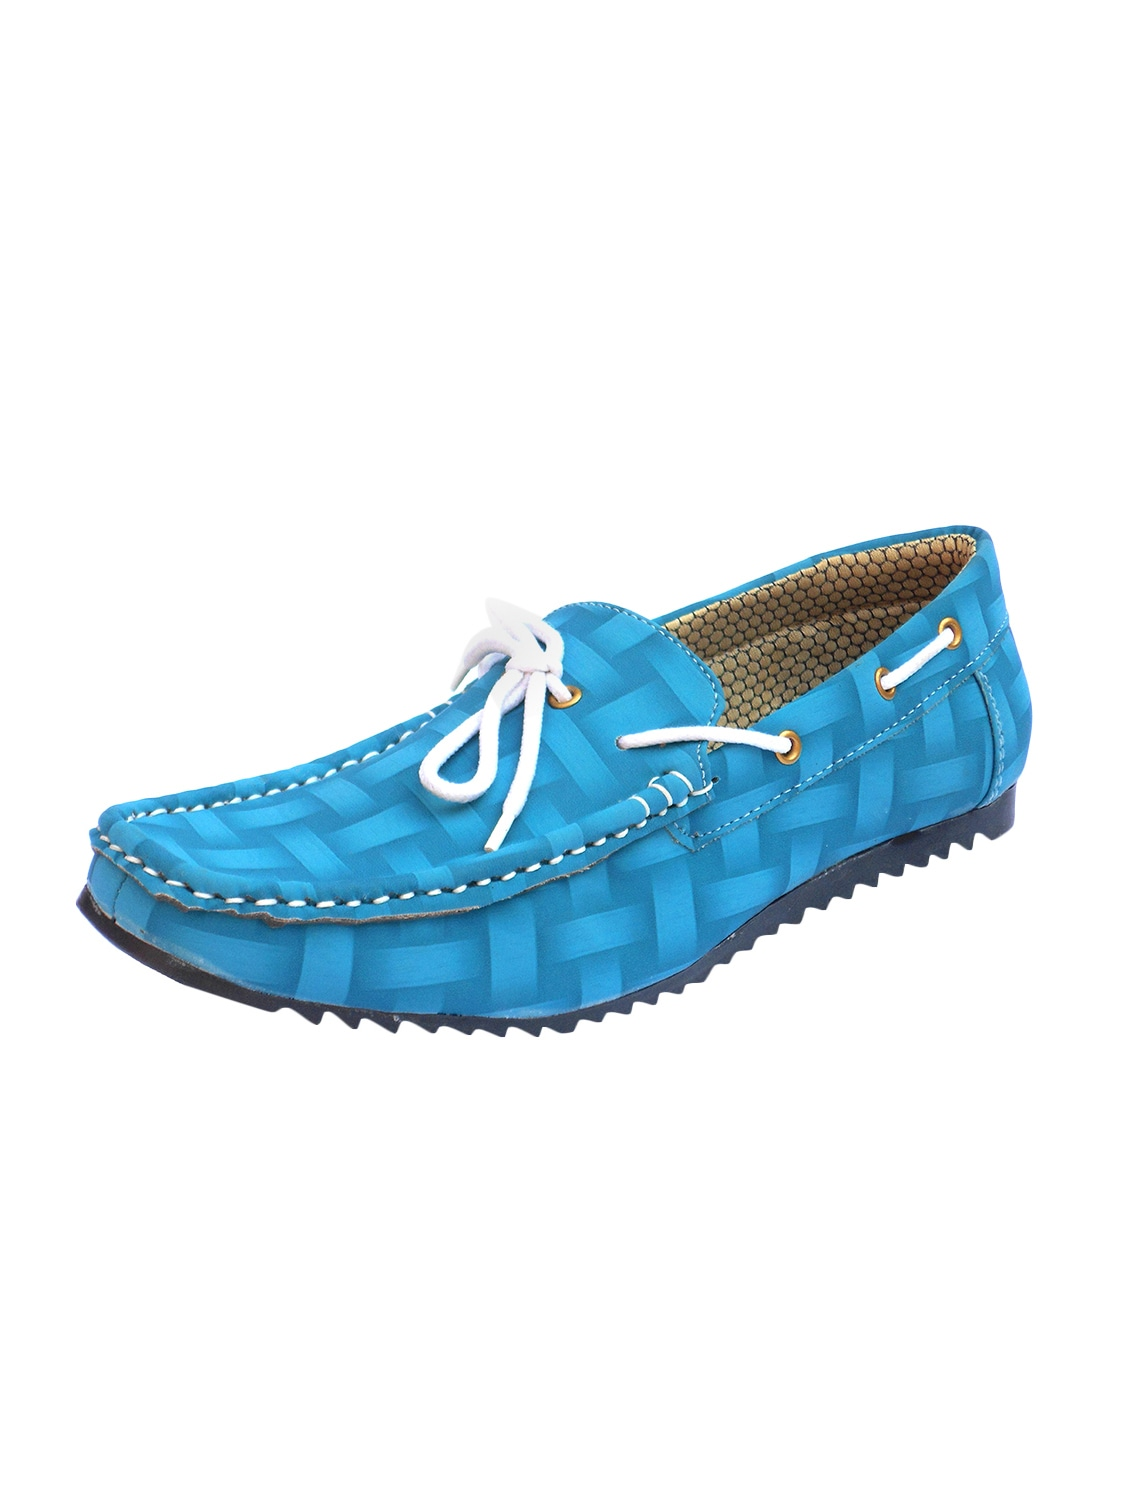 d8804b03548 Buy Blue Leatherette Slip On Loafer for Men from Blueway for ₹506 at 49%  off